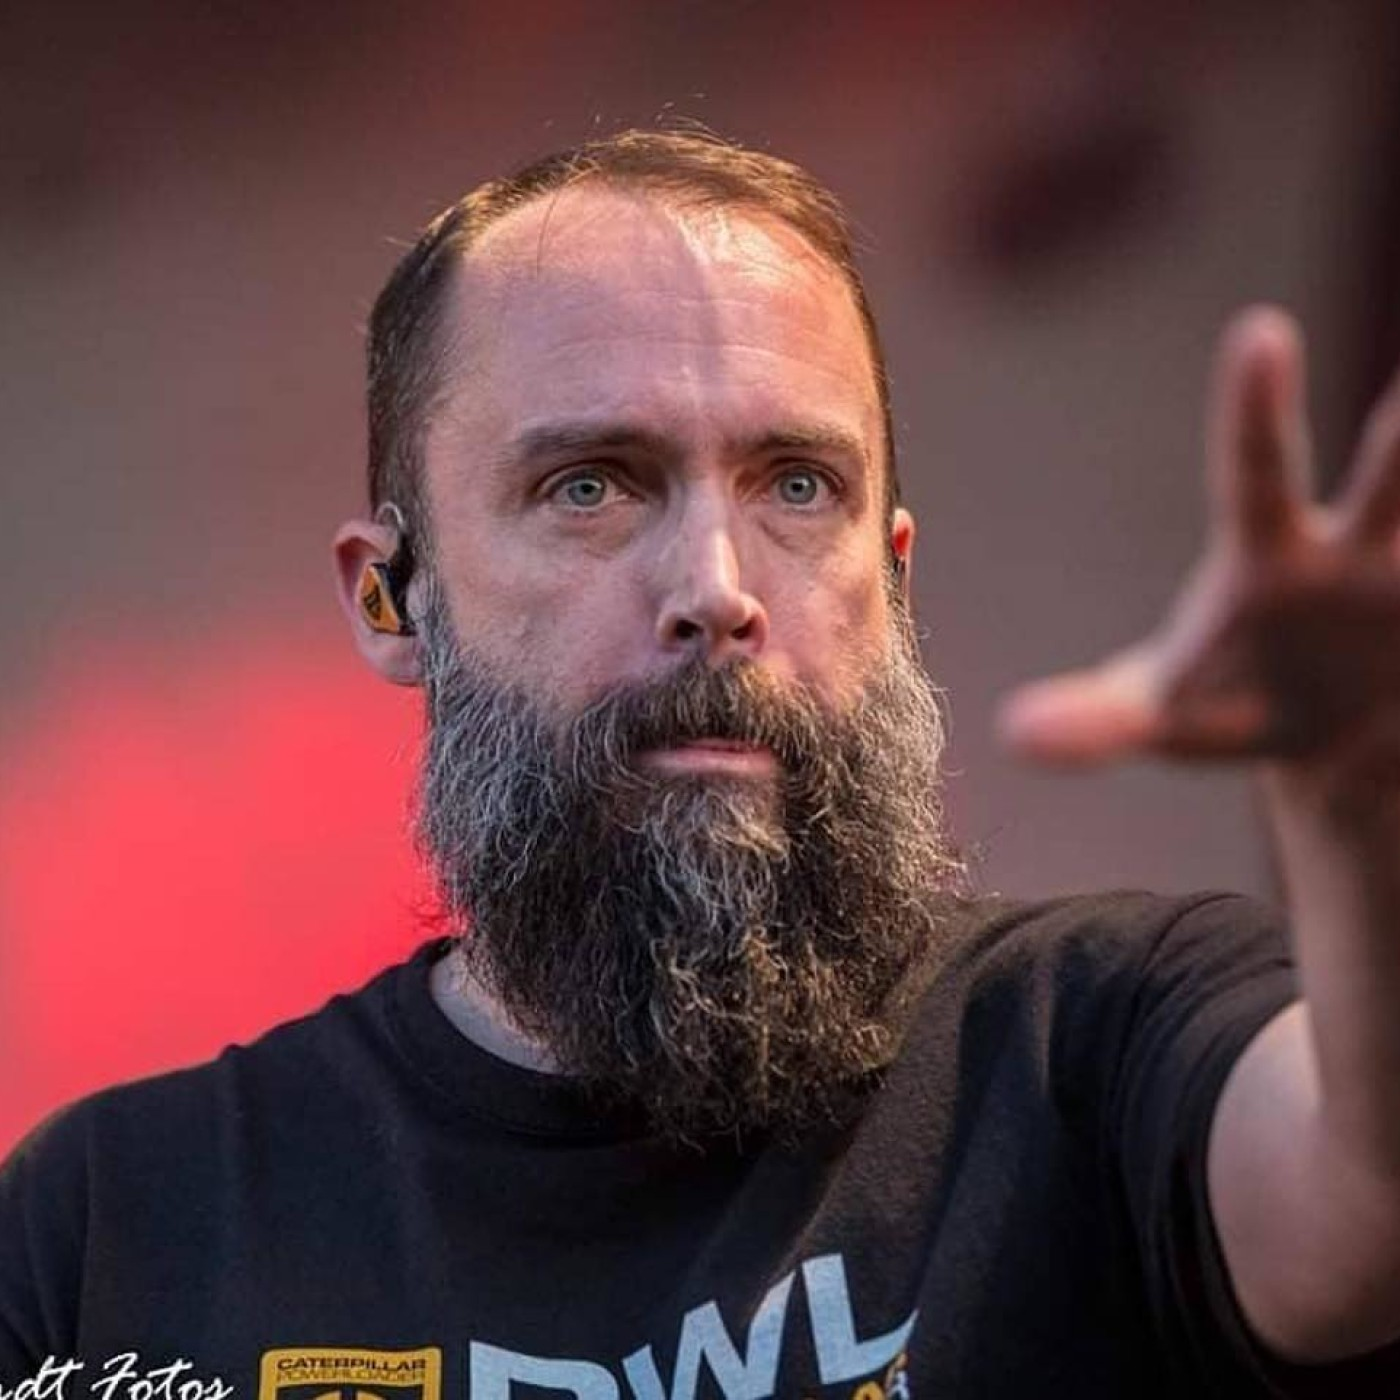 213Rock Podcast Harrag Melodica Podcast Inter with Neil Fallon of Clutch  21 12 2020